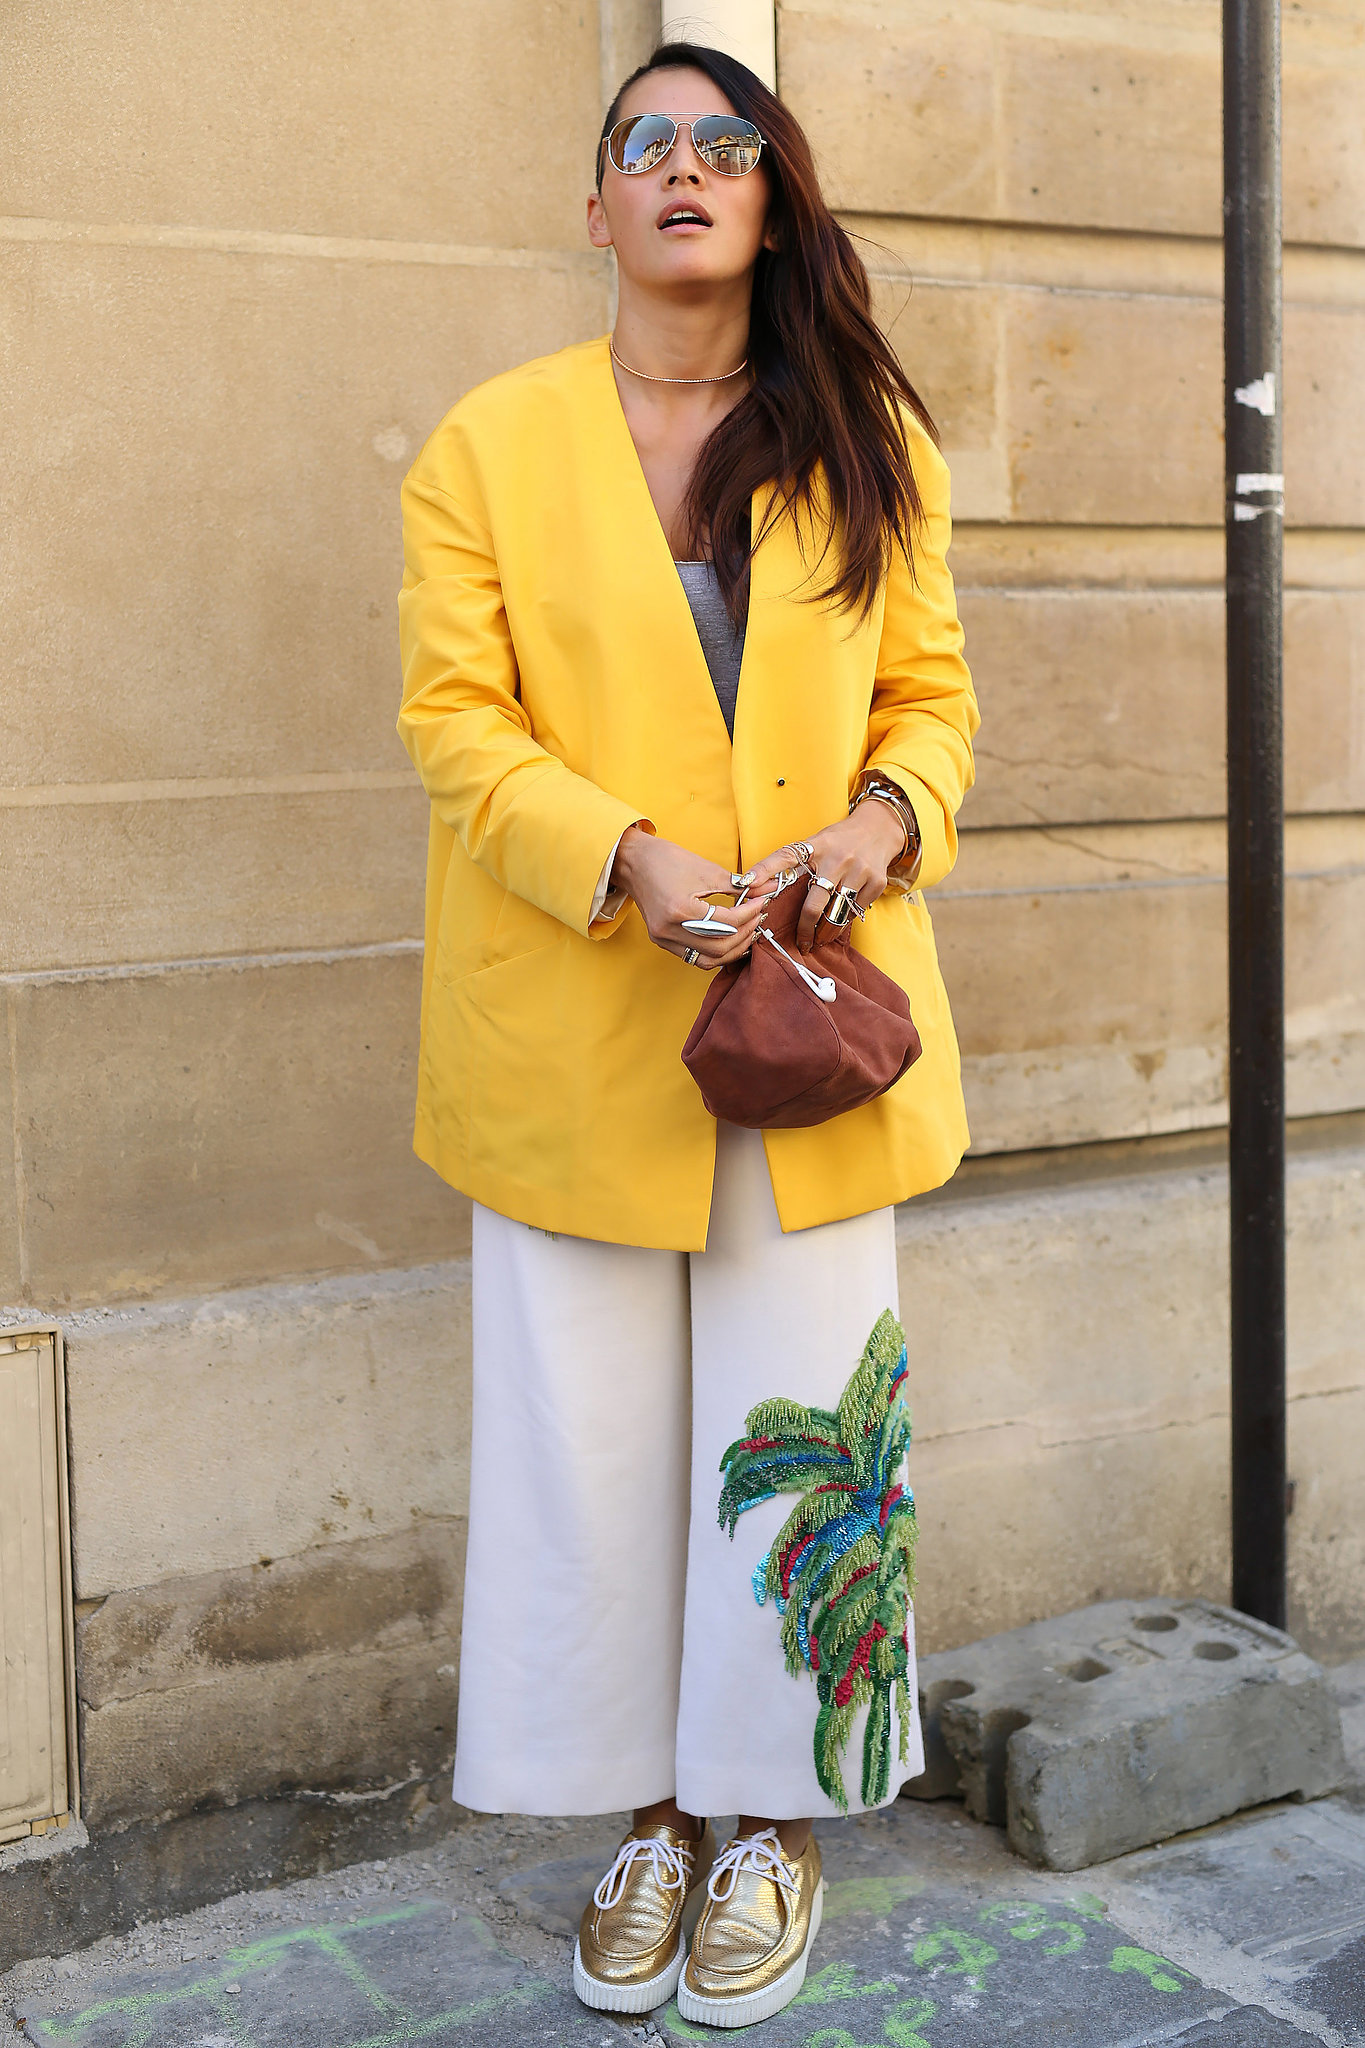 An oversize bright blazer was accented by gold shoes.